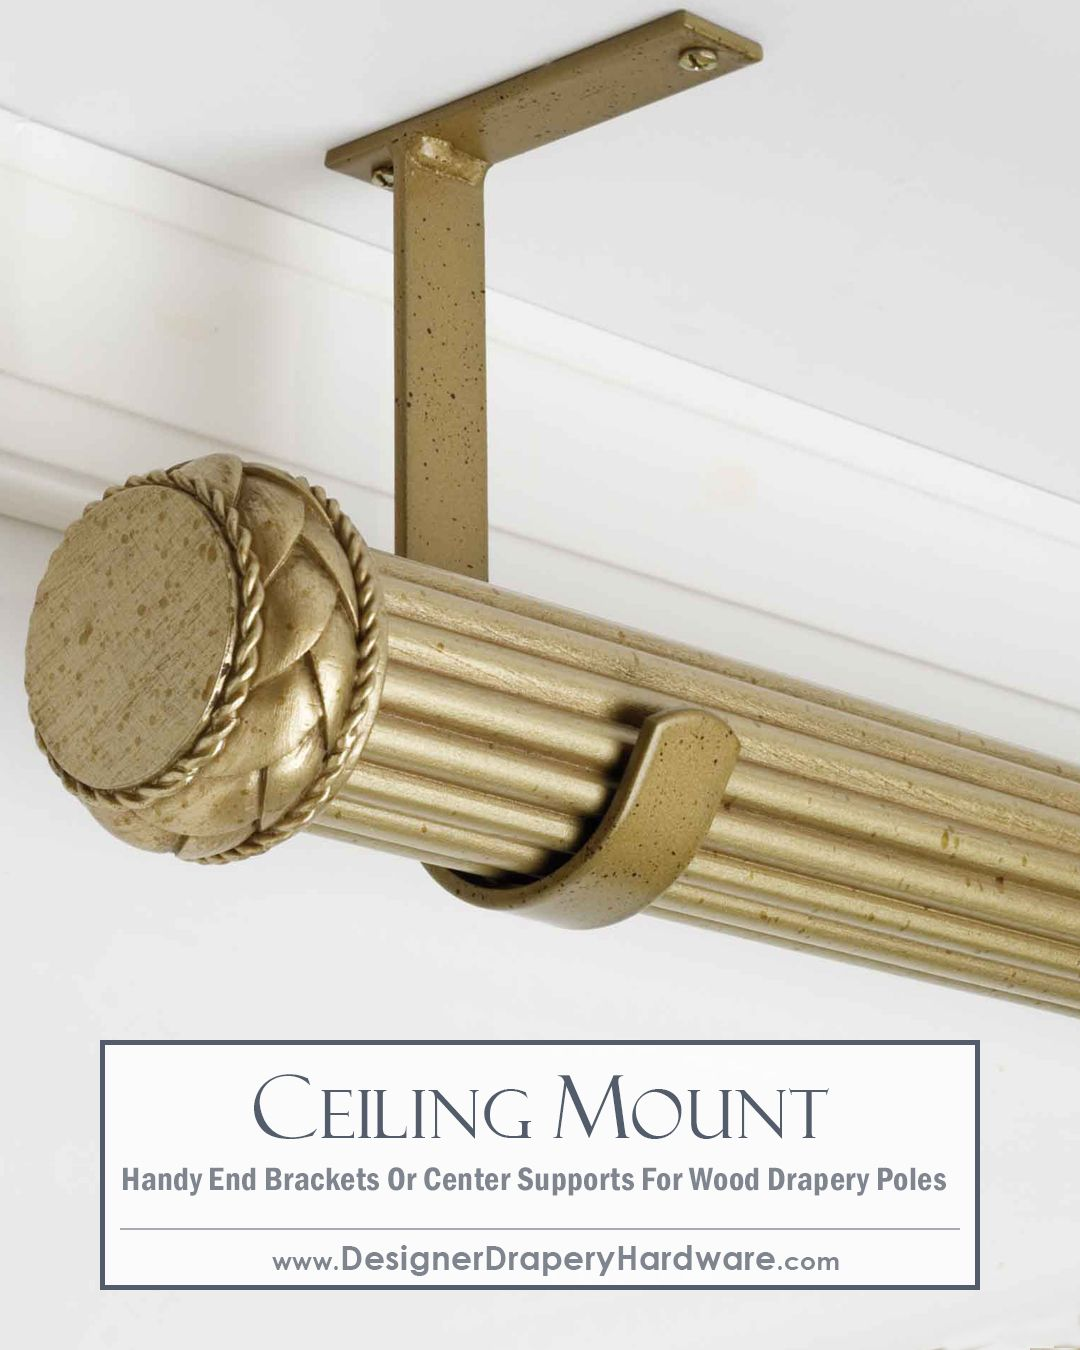 Simple And Fast Ceiling Mount Installations For Wood